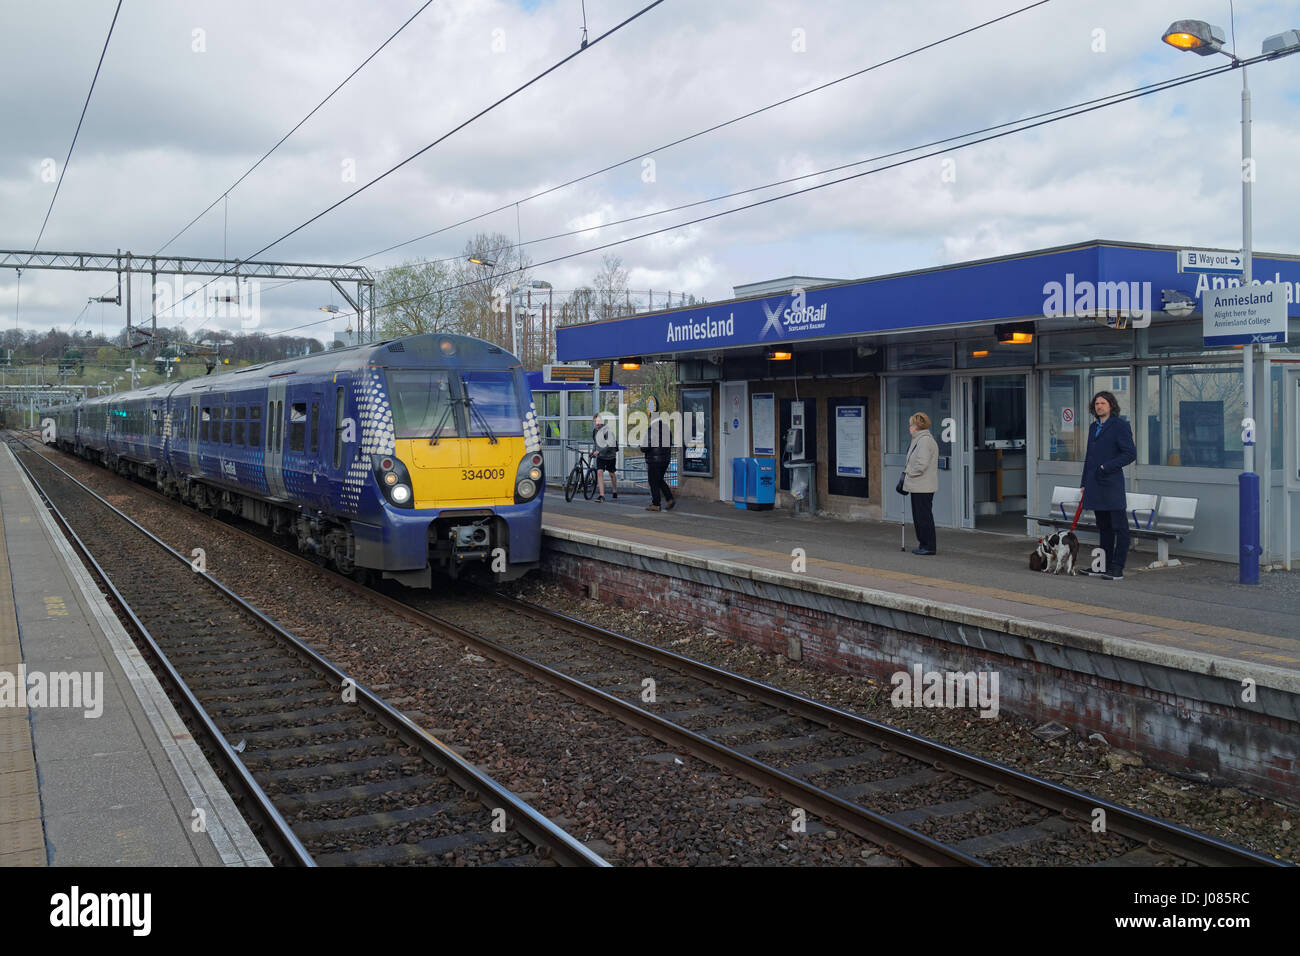 Anniesland railway station train arriving with perspective and passengers - Stock Image